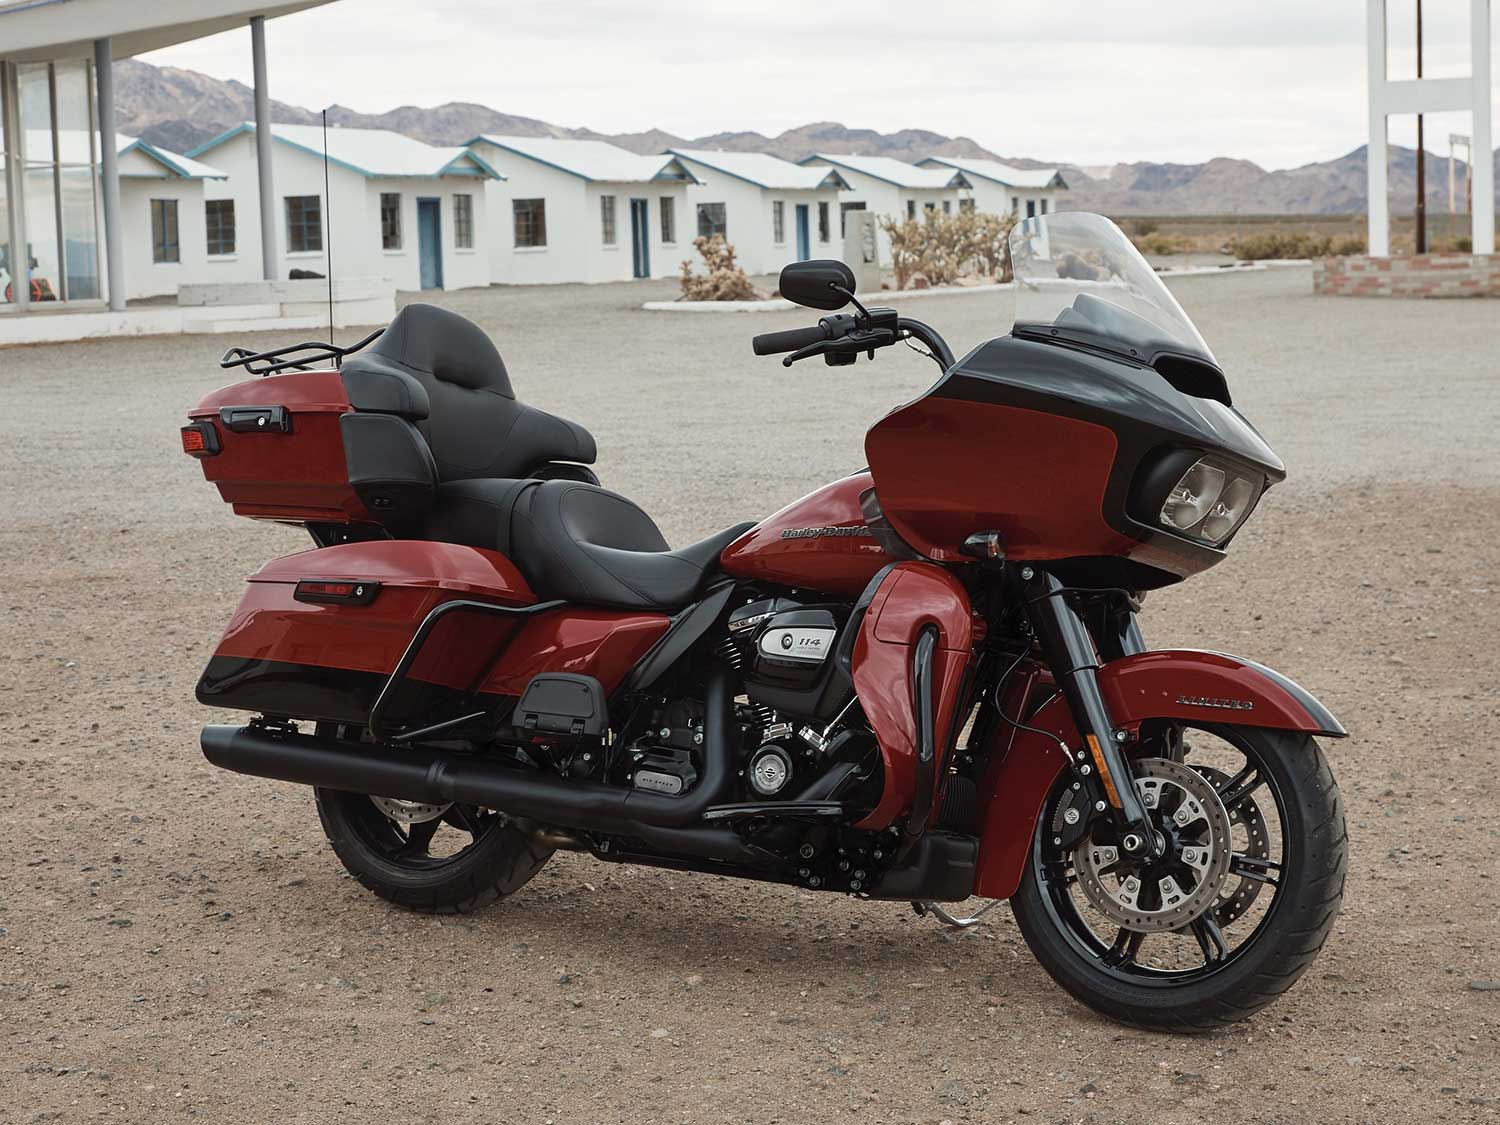 2020 Harley Davidson Road Glide Limited First Look Motorcycle Cruiser